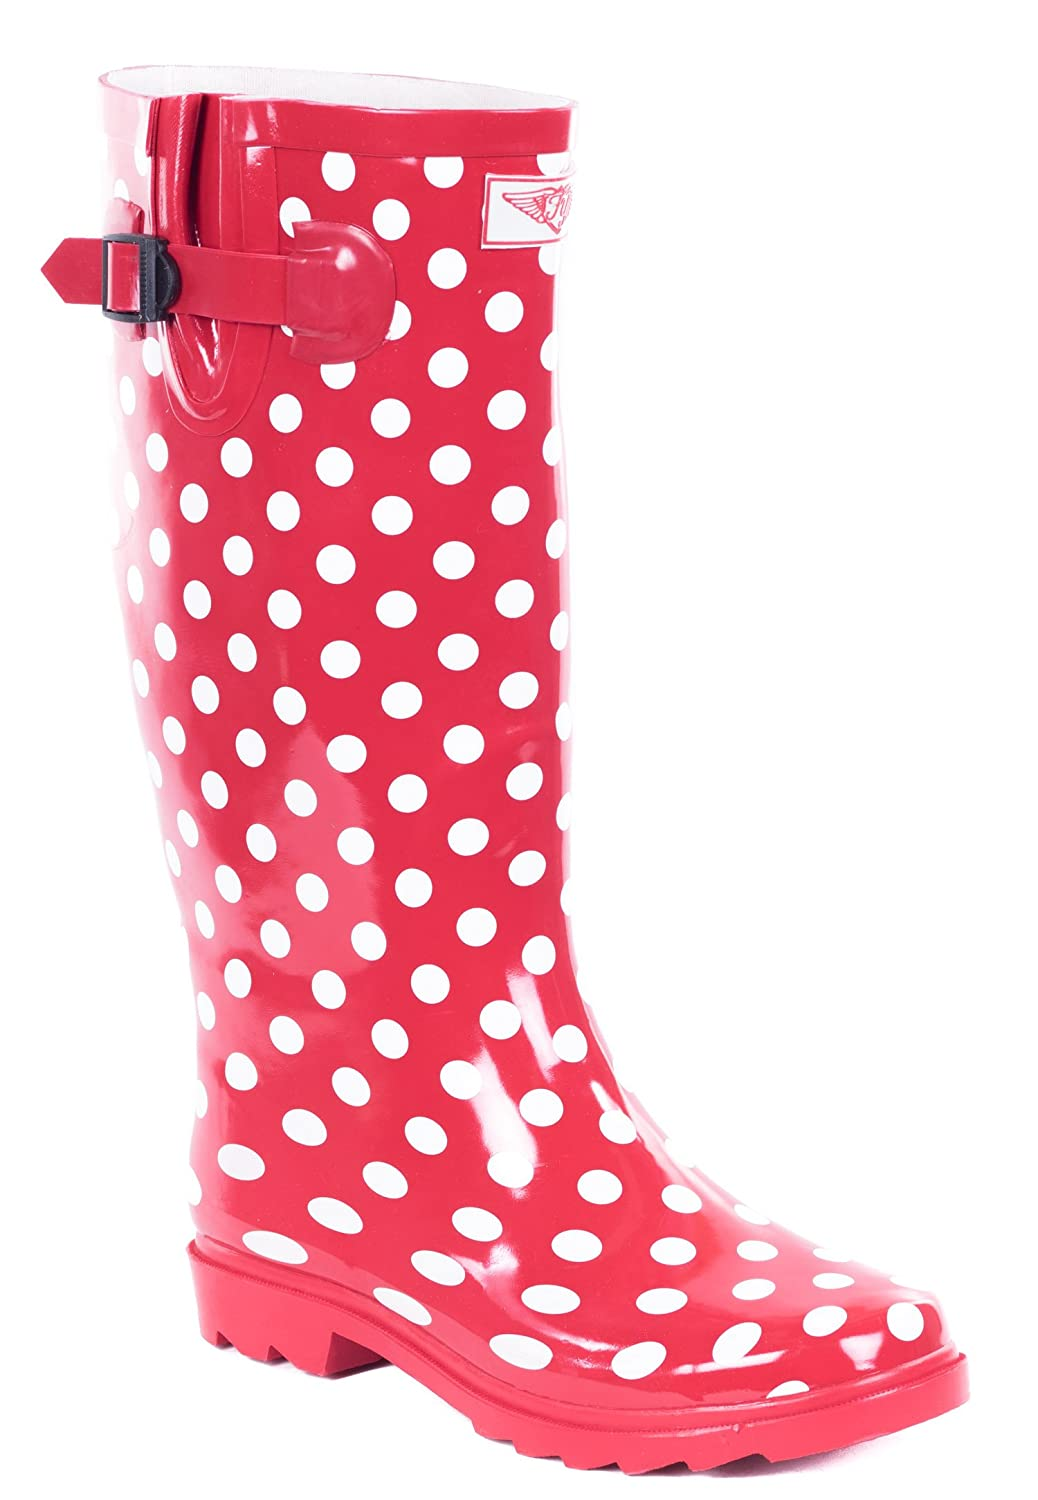 50% price speical offer authentic quality Amazon.com | Women Full Rubber Rain Boots, Pink Polka Dots ...